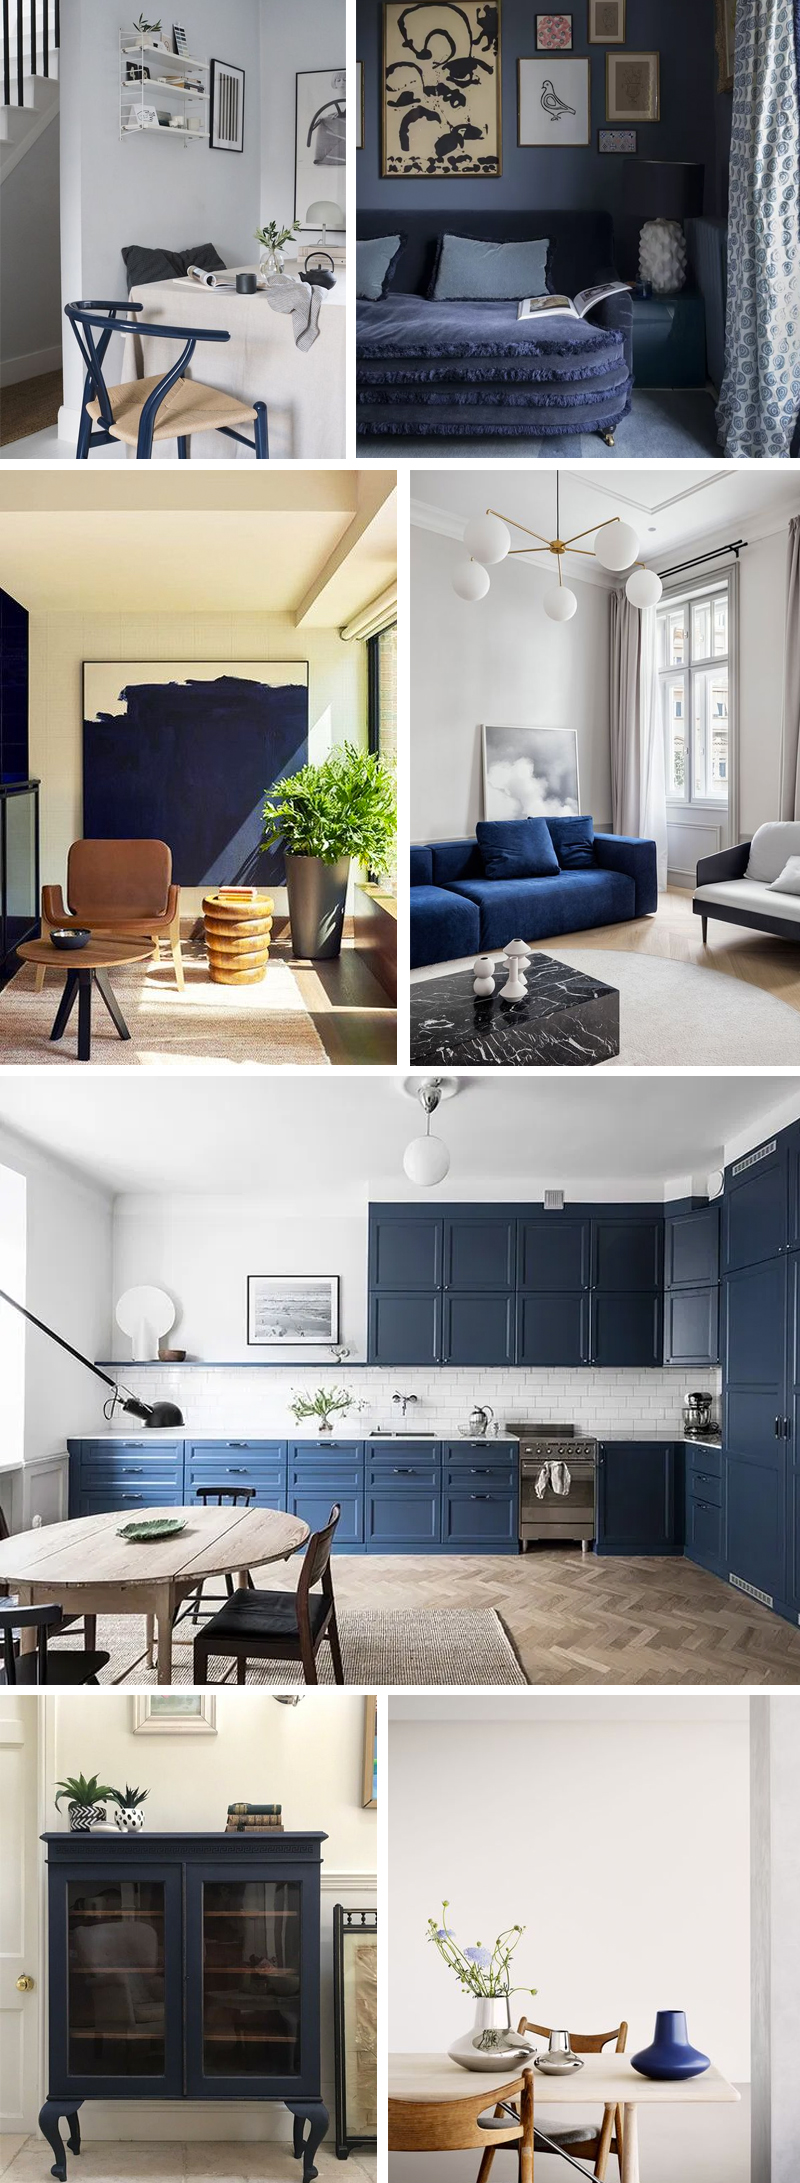 donkerblauw interieur styling